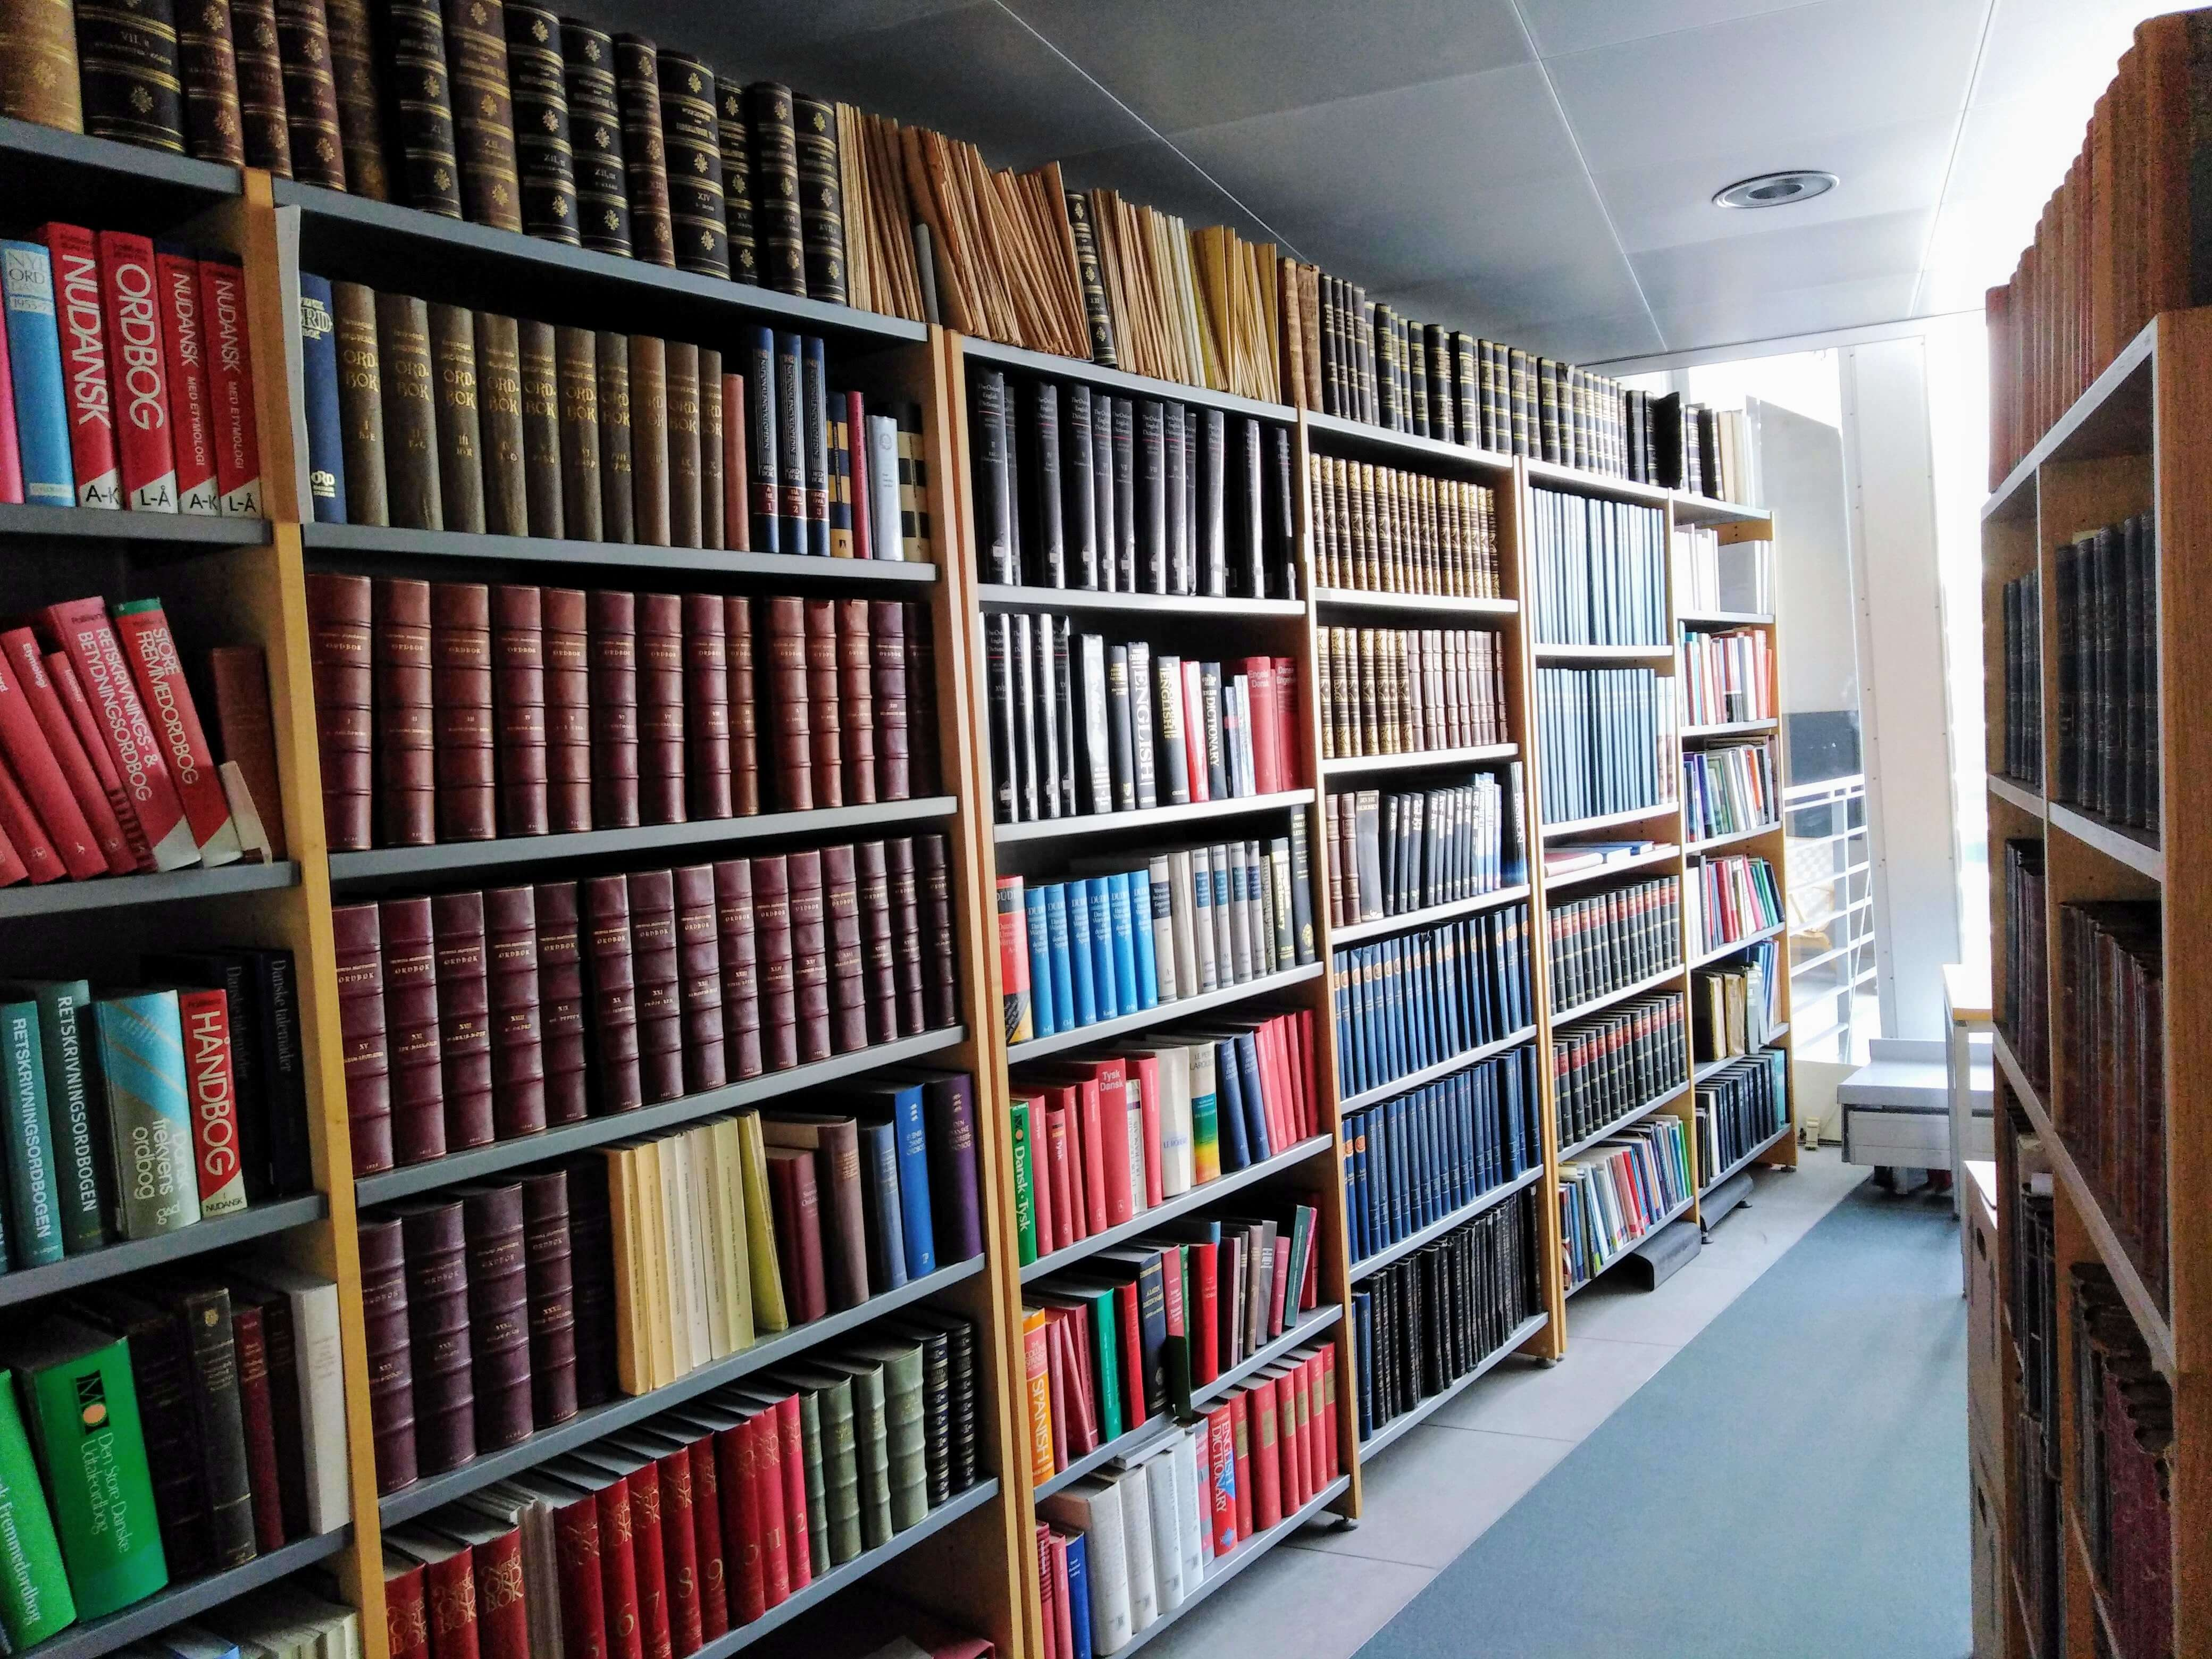 dictionary-rdf-library-linked-data